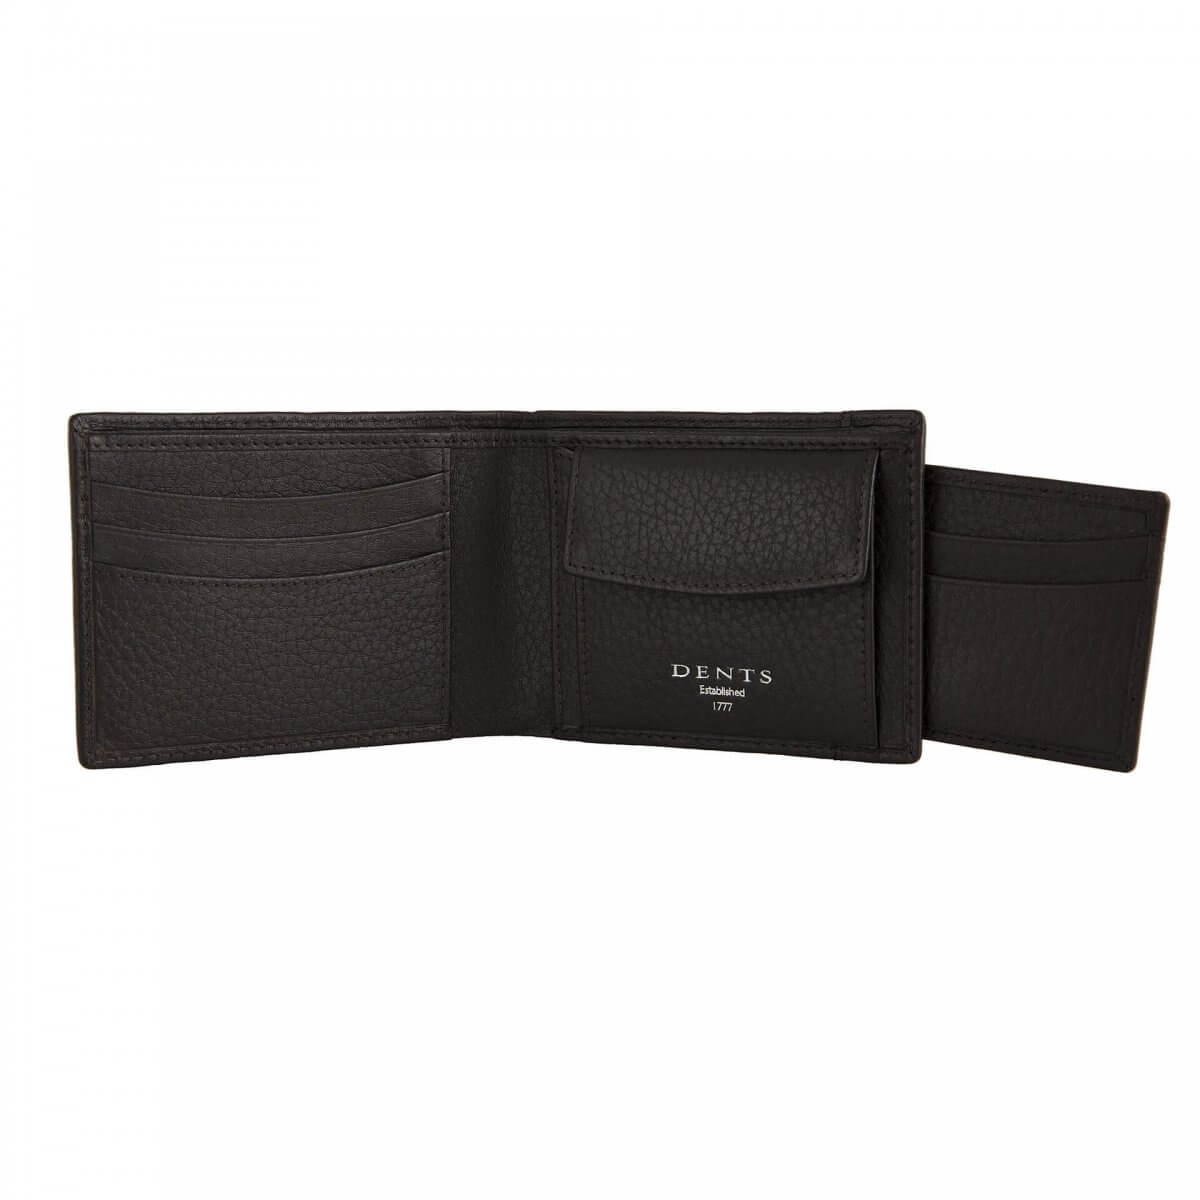 Dents Leather Wallet and Card Holder in Black